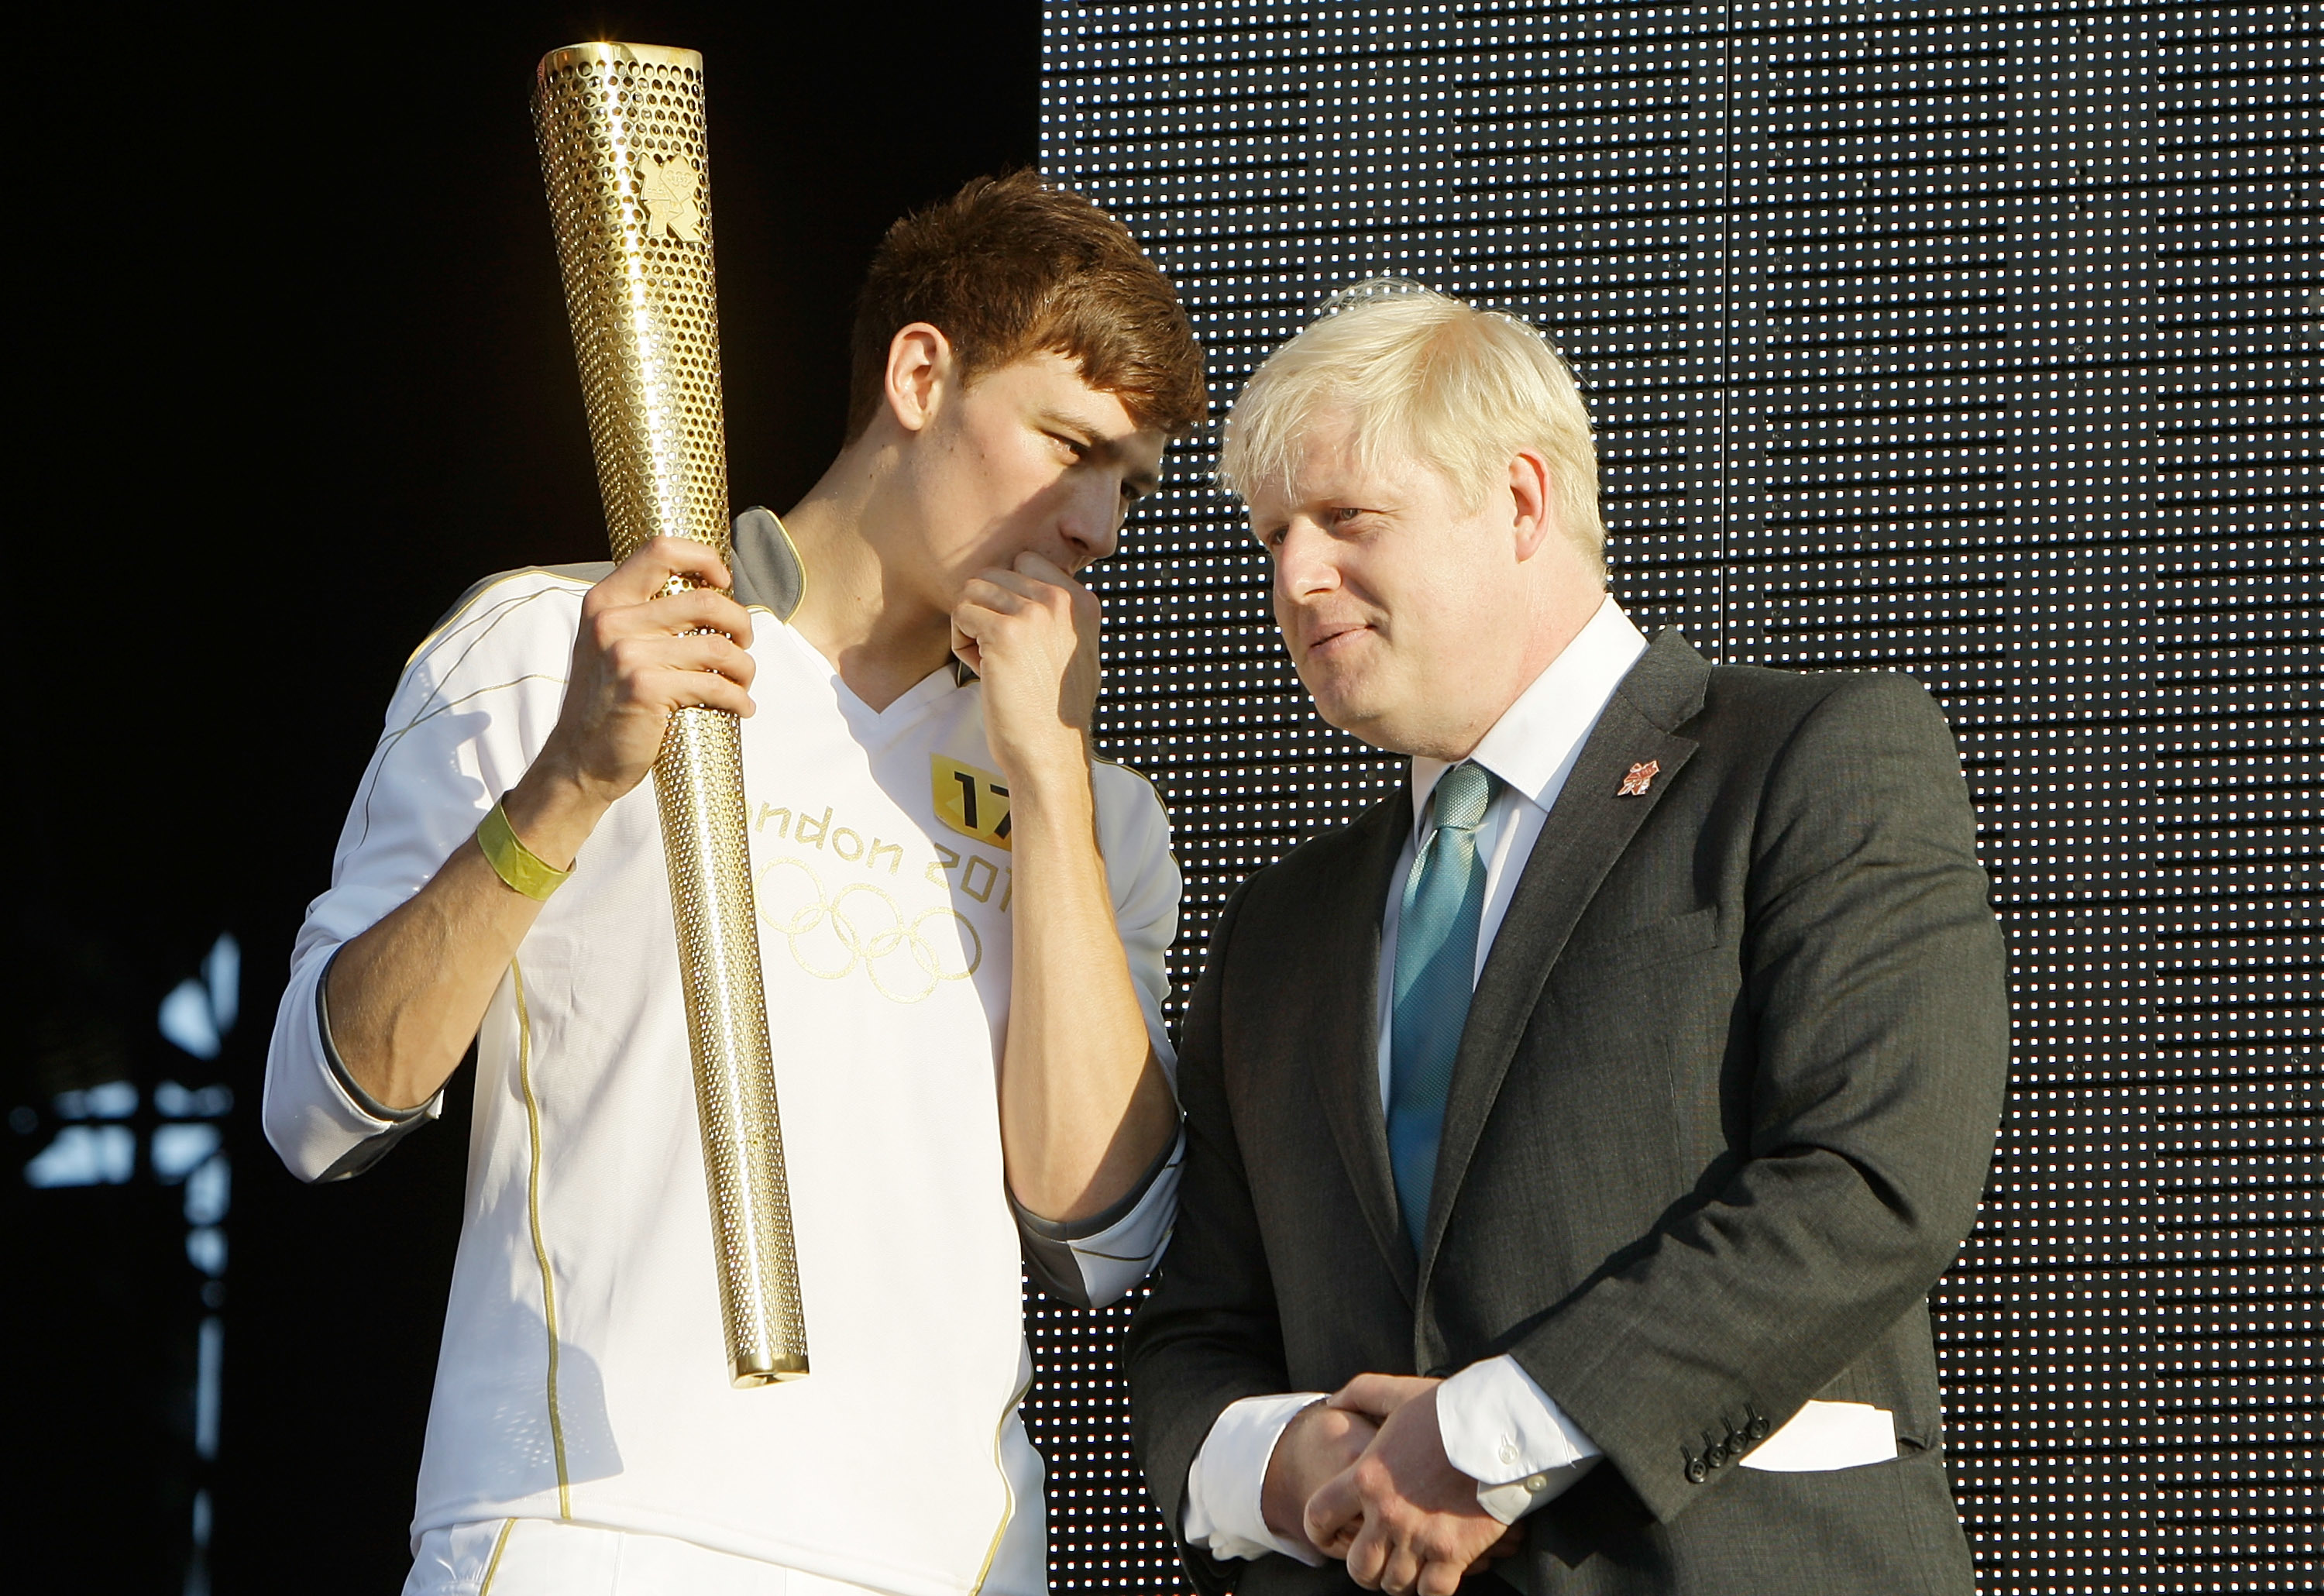 Tyler Rix and Mayor Boris Johnson with the Olympic Torch at Coca-Cola's London 2012 Olympic Torch Relay Concert at Hyde Park in London.